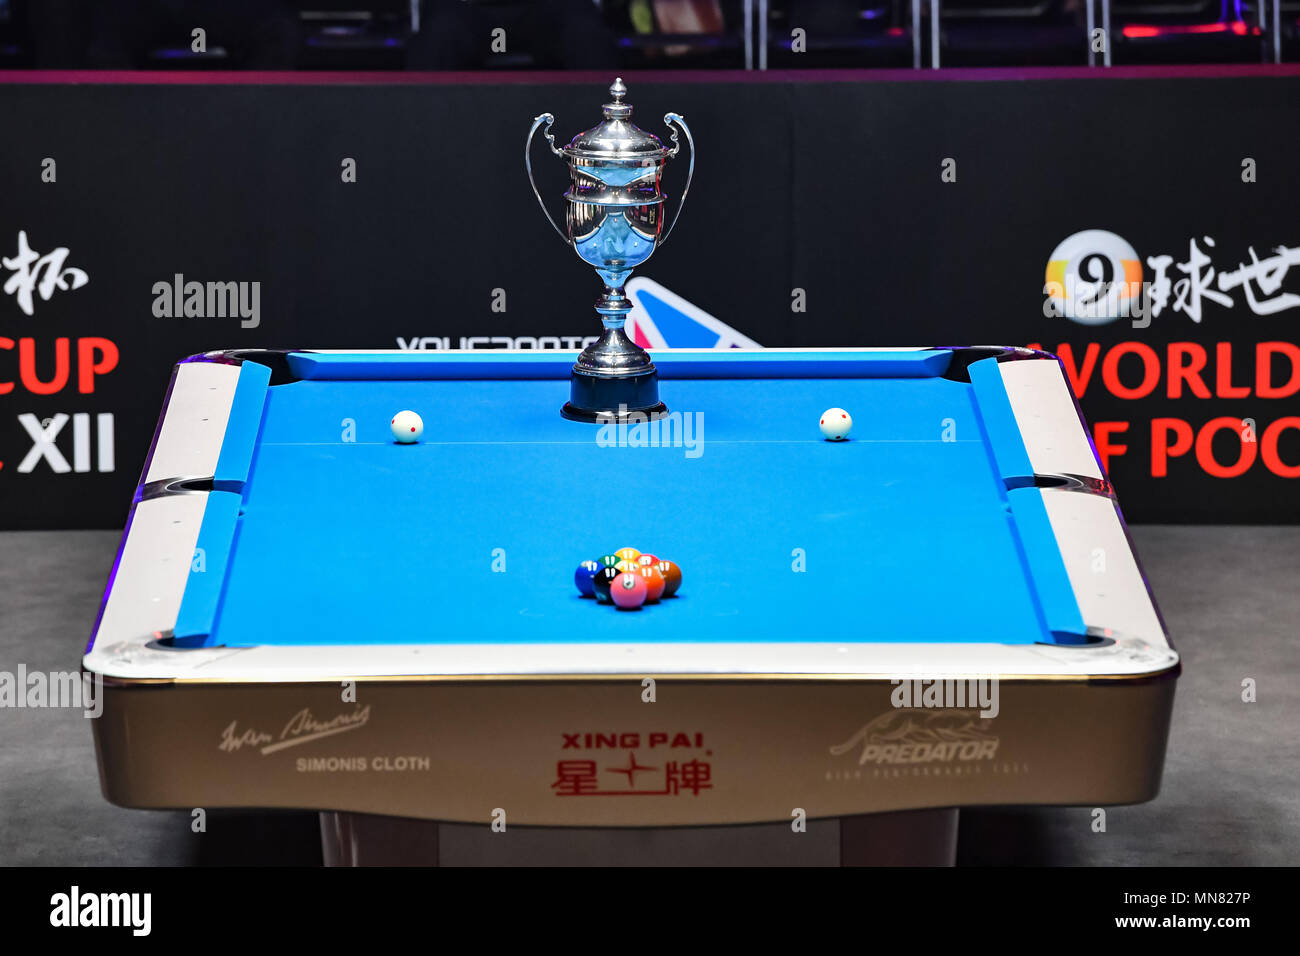 Shanghai, China. 15th May 2018. The match official trophy and the Pool table during WORLD CUP of POOL 2018: OPENING CEREMONY at Luwan (Gymnasium) Arena on Tuesday, 15 May 2018. SHANGHAI, CHINA. Credit: Taka G Wu Credit: Taka Wu/Alamy Live News - Stock Image